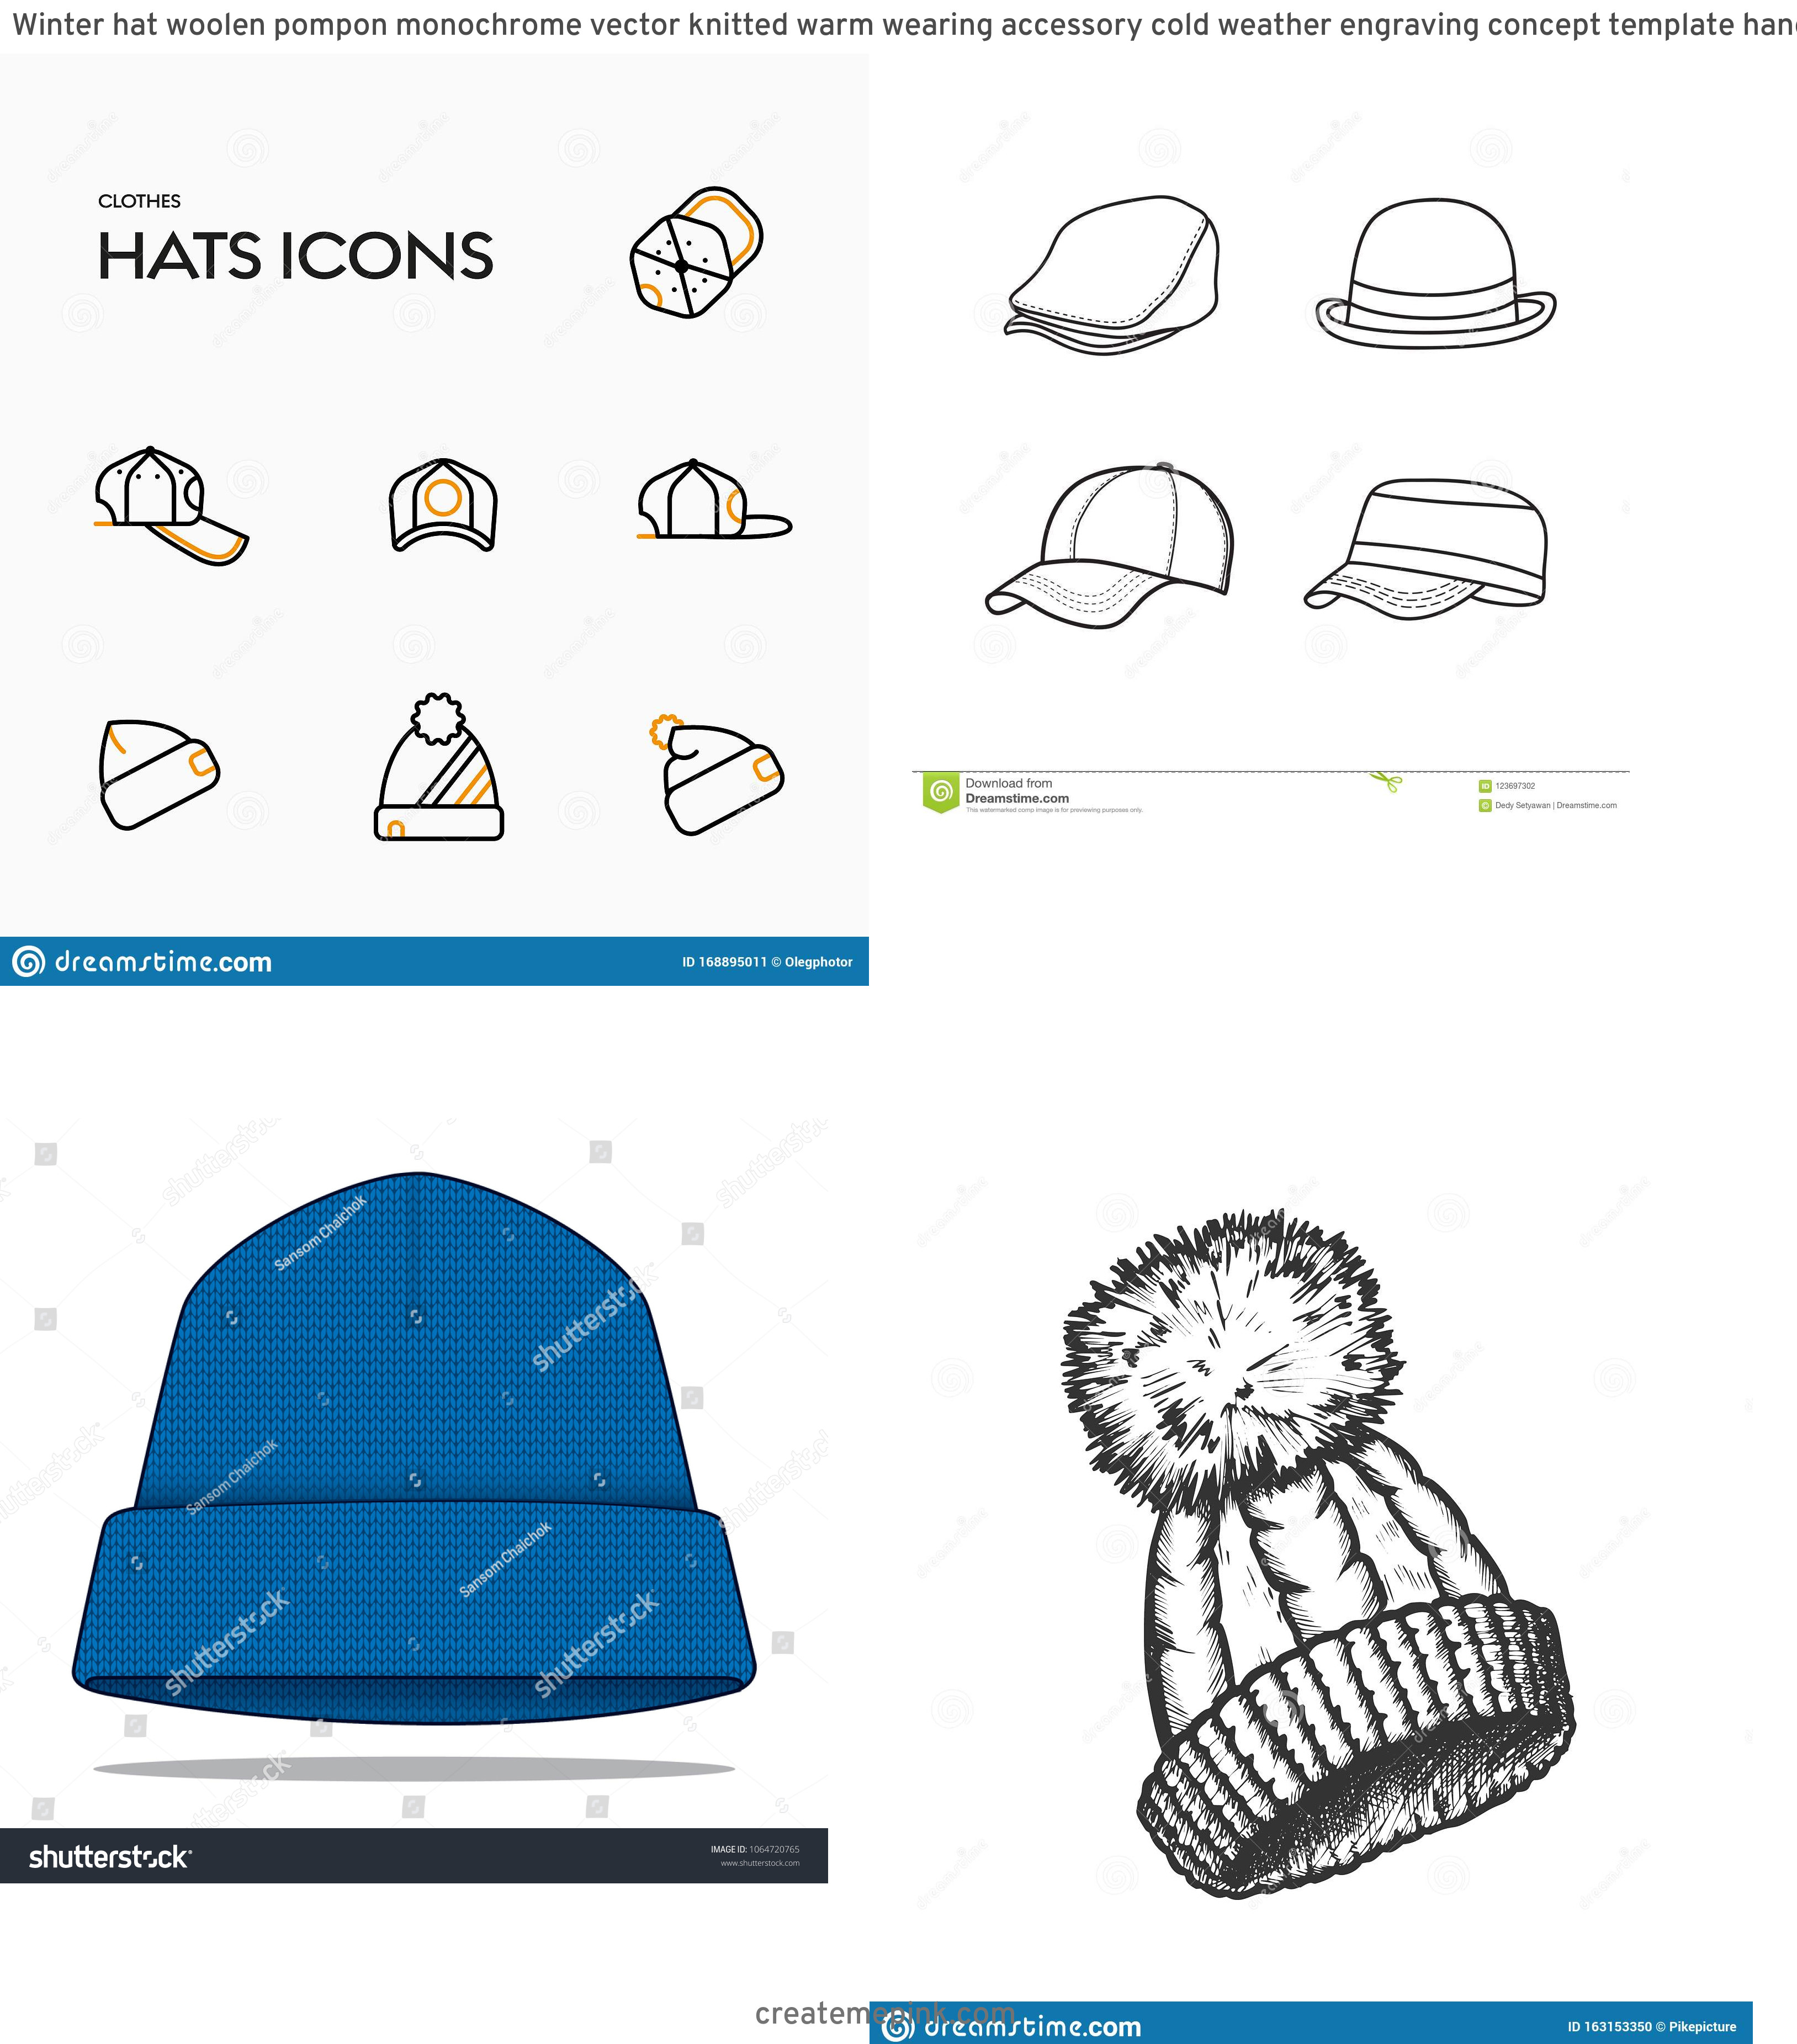 Winter Hat Vectors Templates: Winter Hat Woolen Pompon Monochrome Vector Knitted Warm Wearing Accessory Cold Weather Engraving Concept Template Hand Image